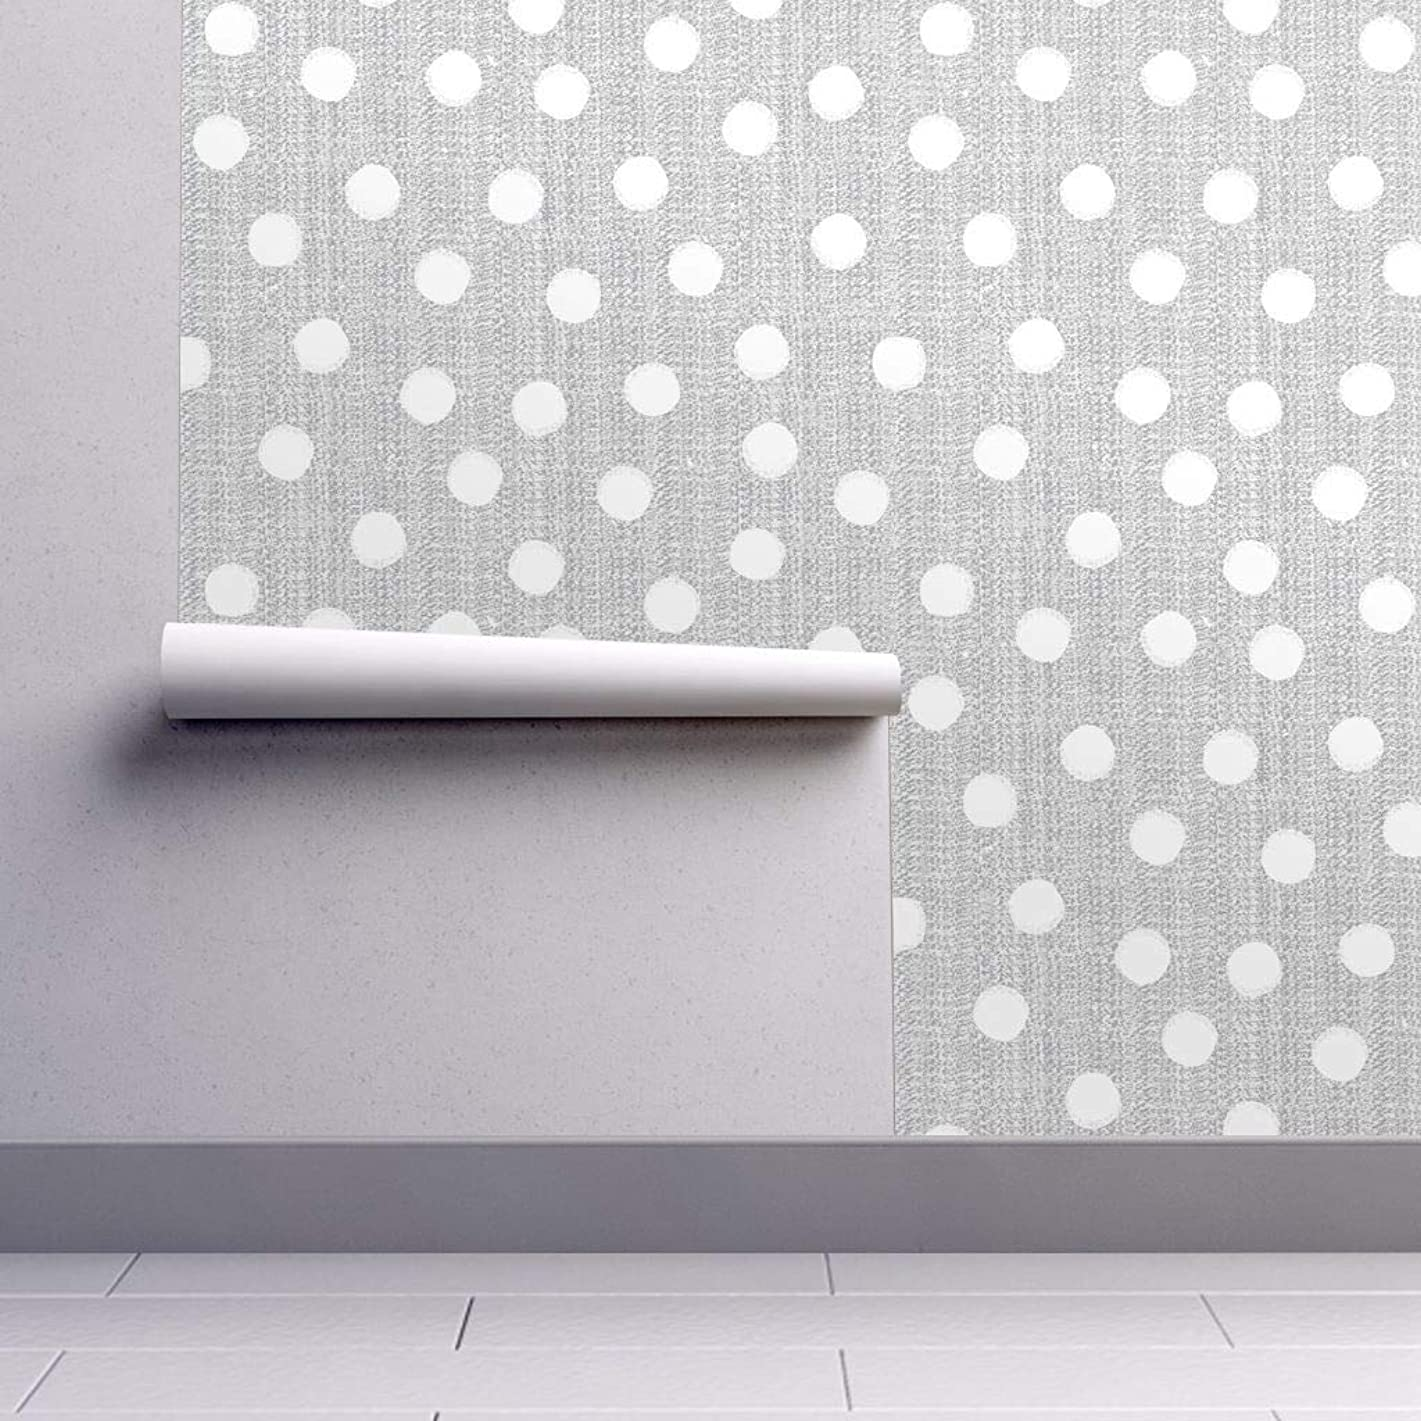 Peel-and-Stick Removable Wallpaper - Gray and White Dot Gray Dotted Nursery Decor Dots Gray Polka Dots by Ottomanbrim - 12in x 24in Woven Textured Peel-and-Stick Removable Wallpaper Test Swatch